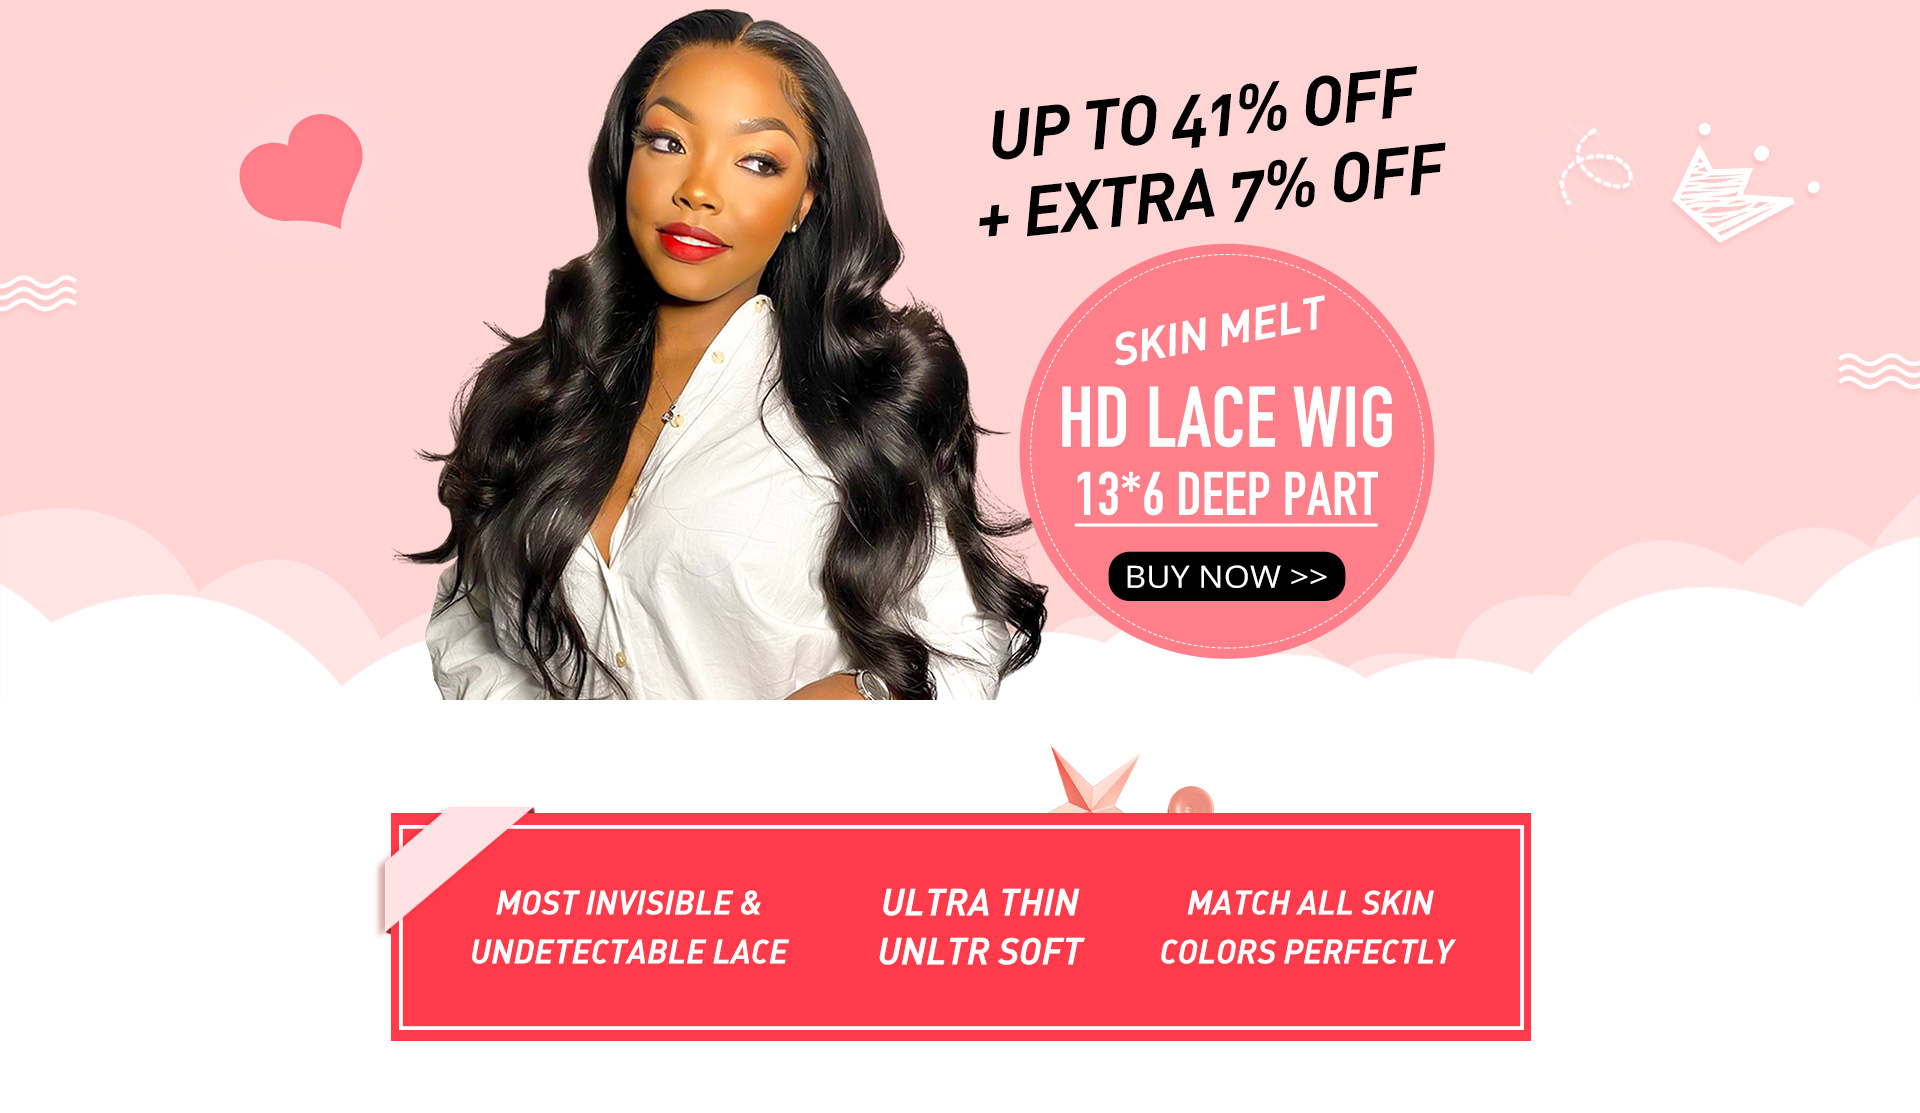 hd lace wigs body wave lace front wigs